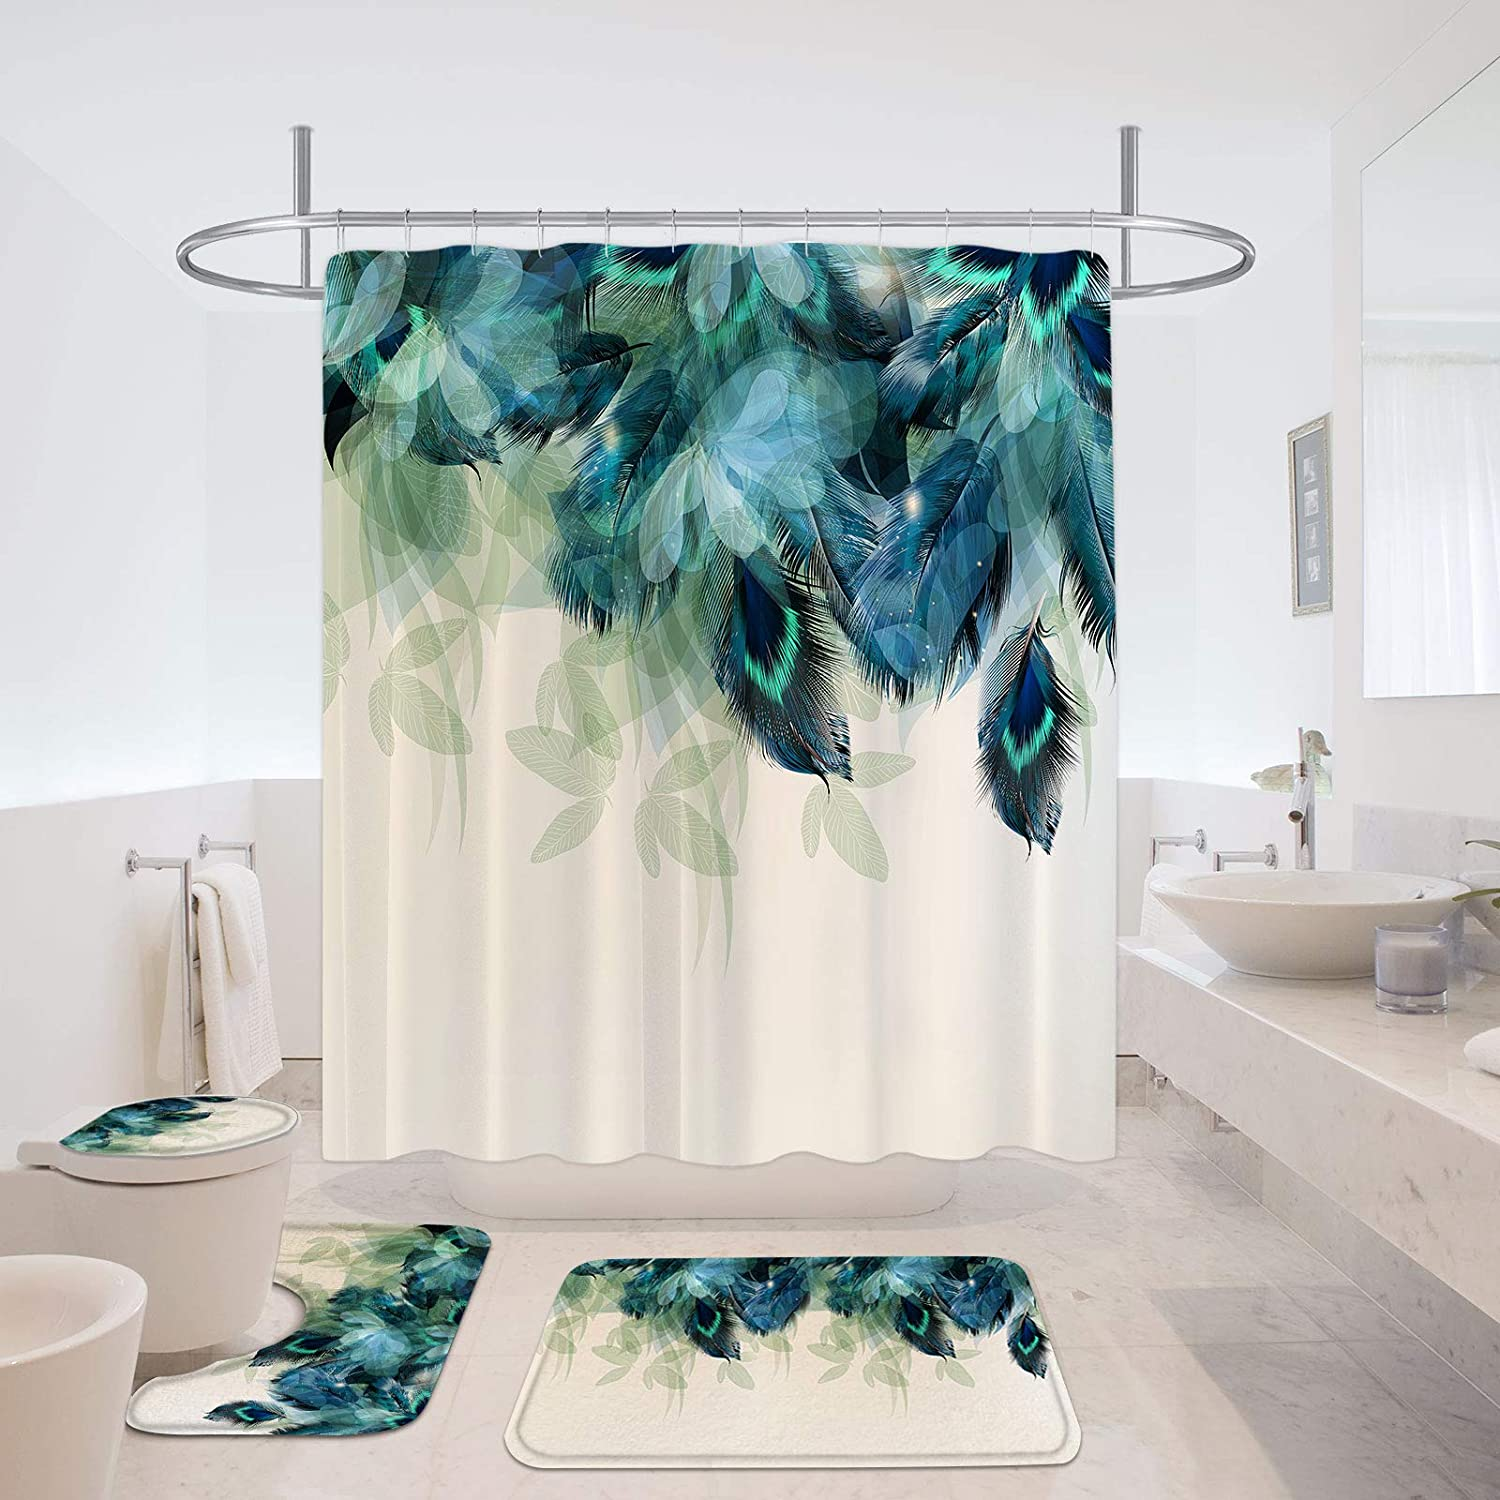 MitoVilla Minneapolis Mall Peacock Green Max 66% OFF Feather Shower Curtain with Set Bath Mat